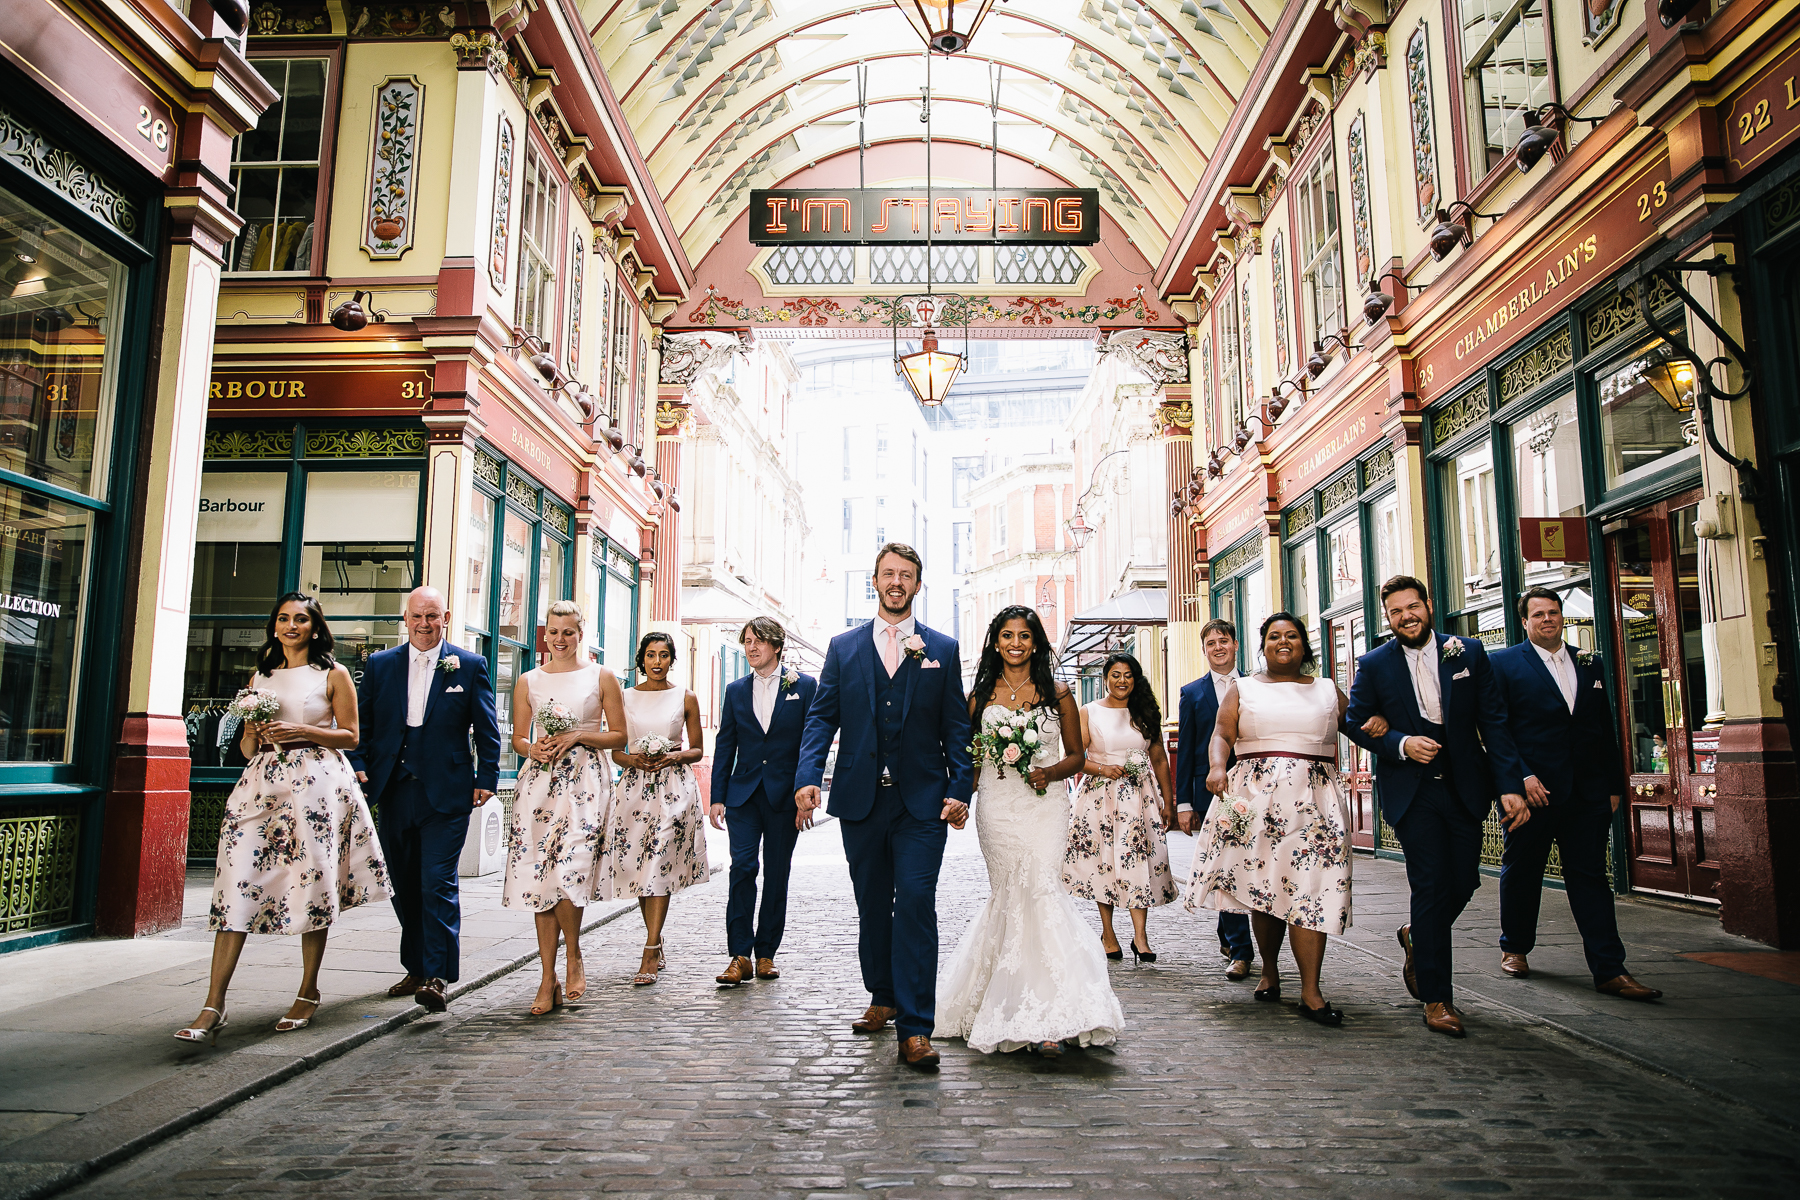 Wedding photographs from Mithulas and Stuarts wedding in Leadenhall market